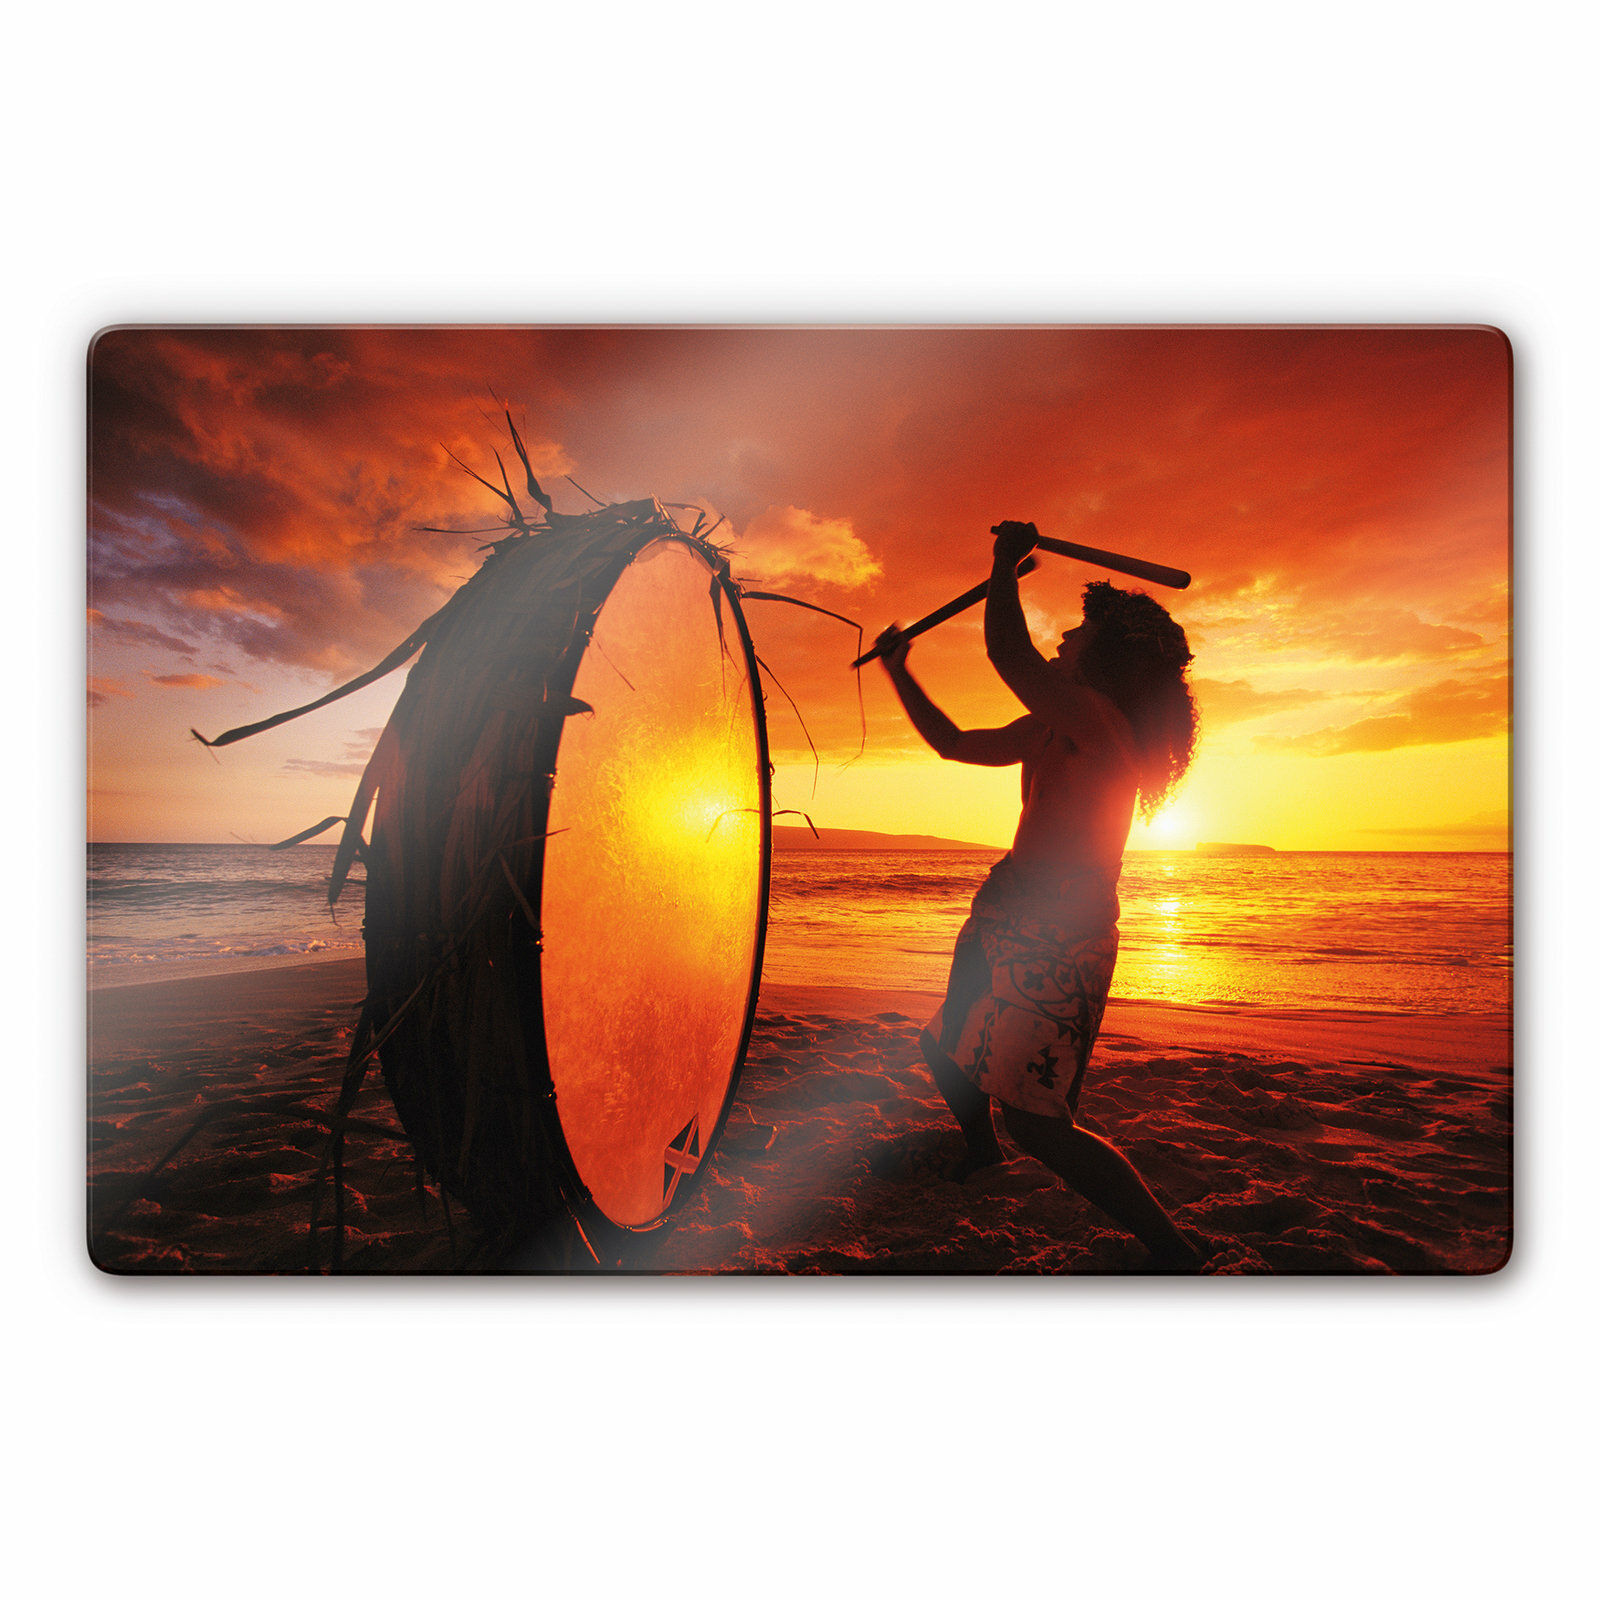 Glass Picture NG Hawaiian Drummers rouge Wall picture ESG safety glass deco